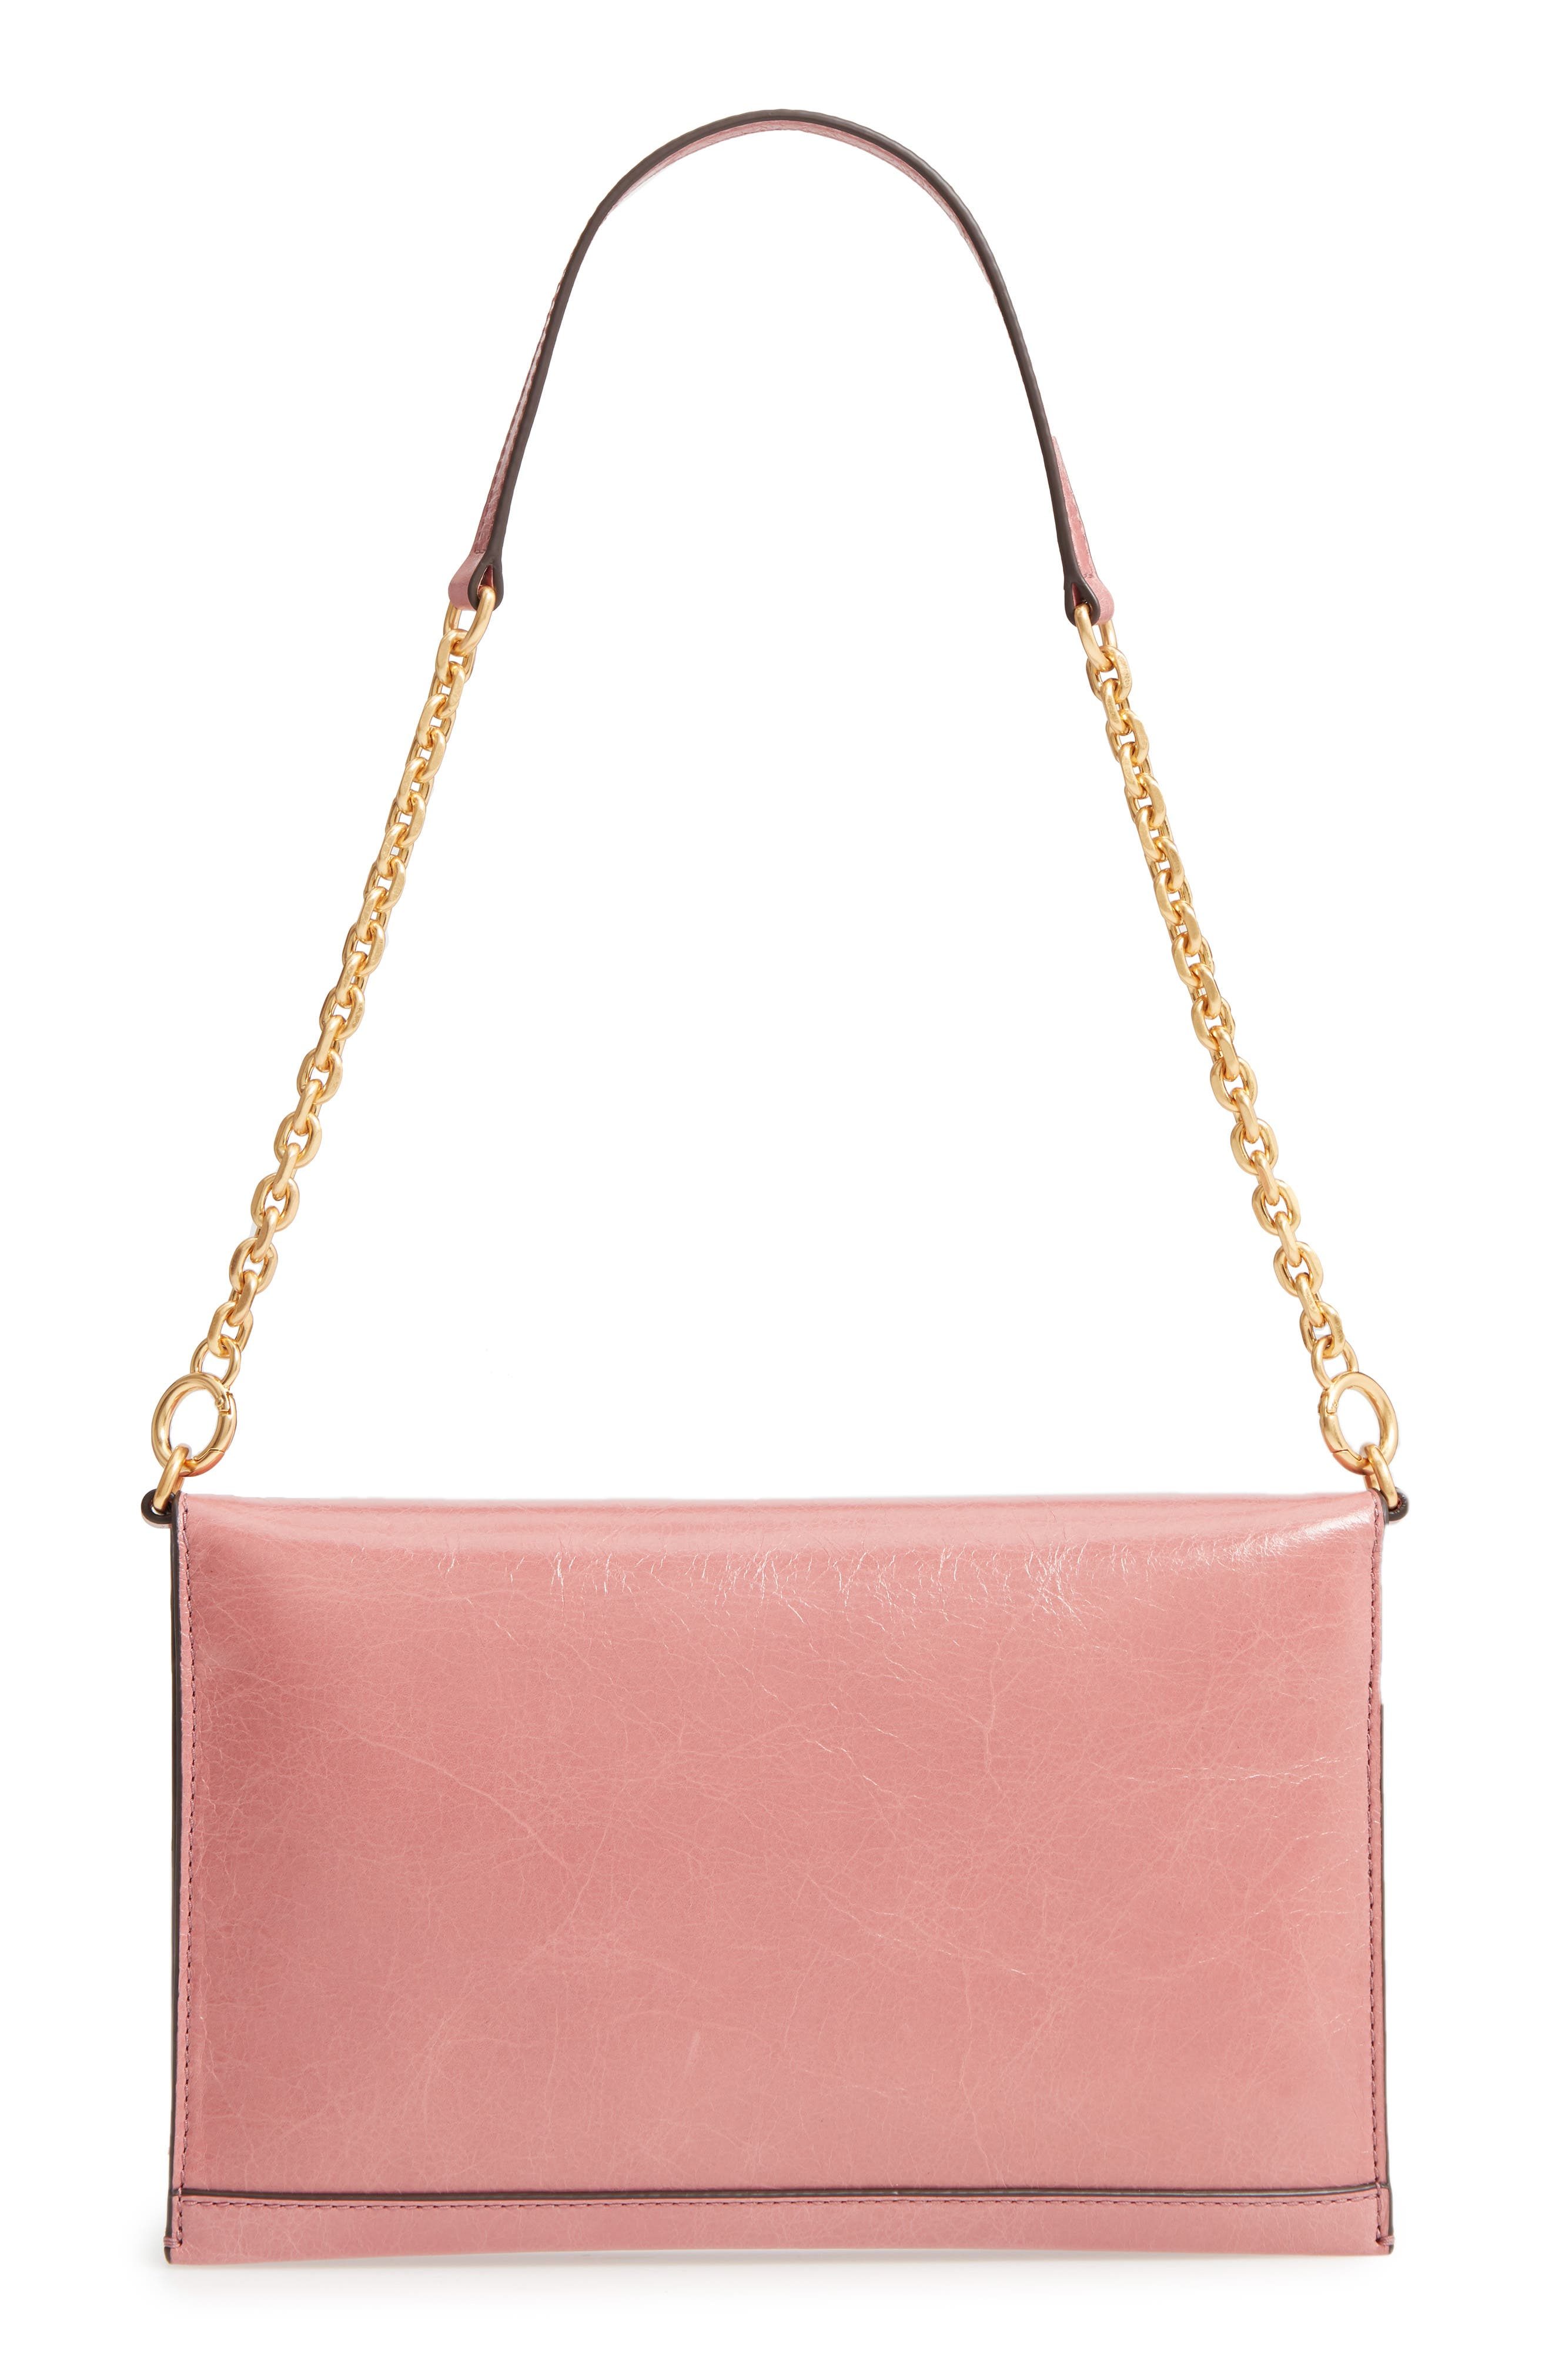 Kira Perforated Leather Clutch,                             Alternate thumbnail 3, color,                             Pink Magnolia